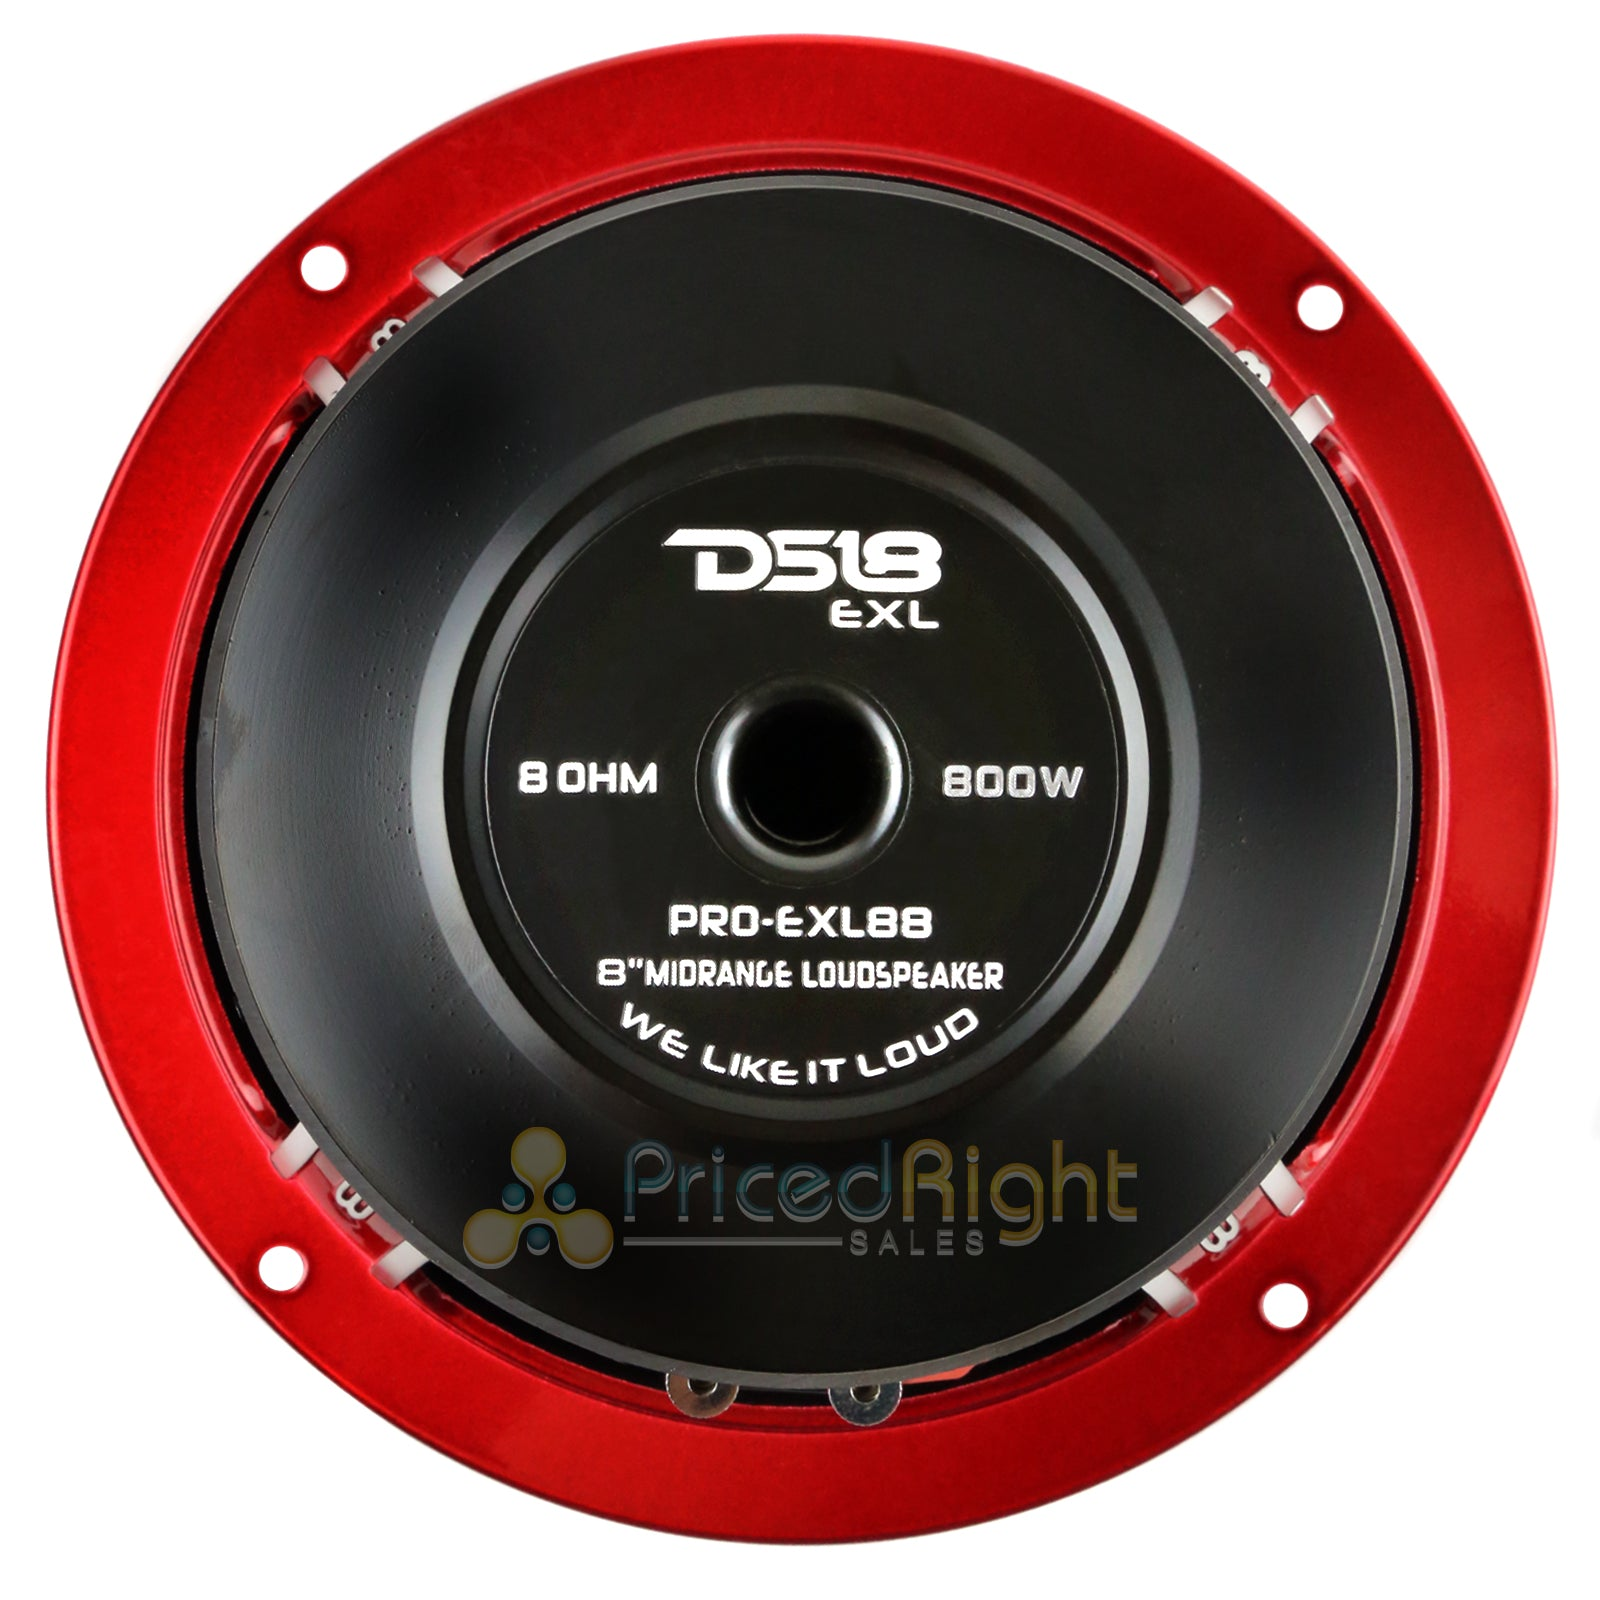 "DS18 PRO-EXL88 8"" Midrange Loudspeaker 800 Watts Max Power 8 Ohm Competition"